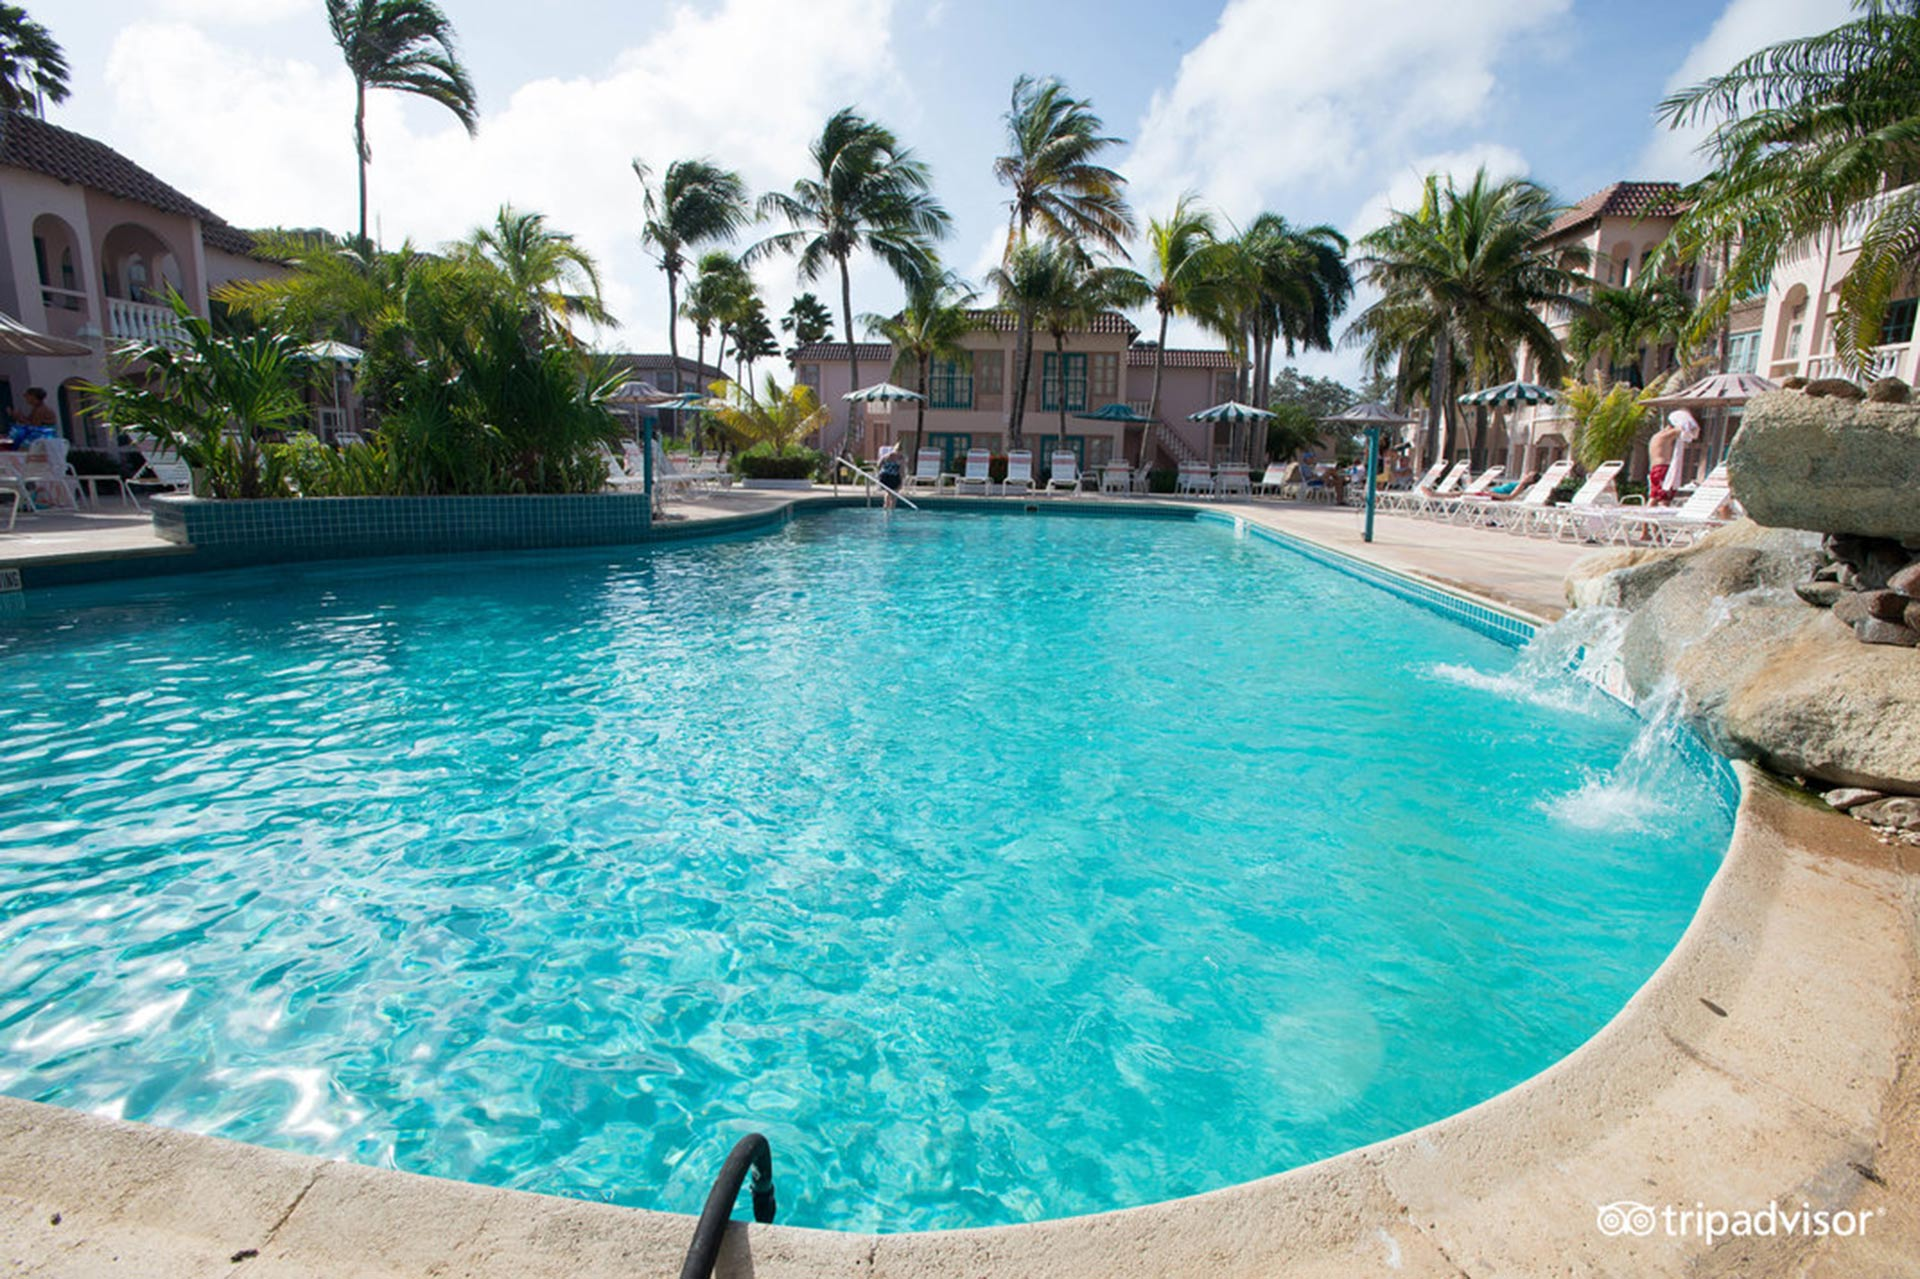 Caribbean Palm Village Resort in Aruba